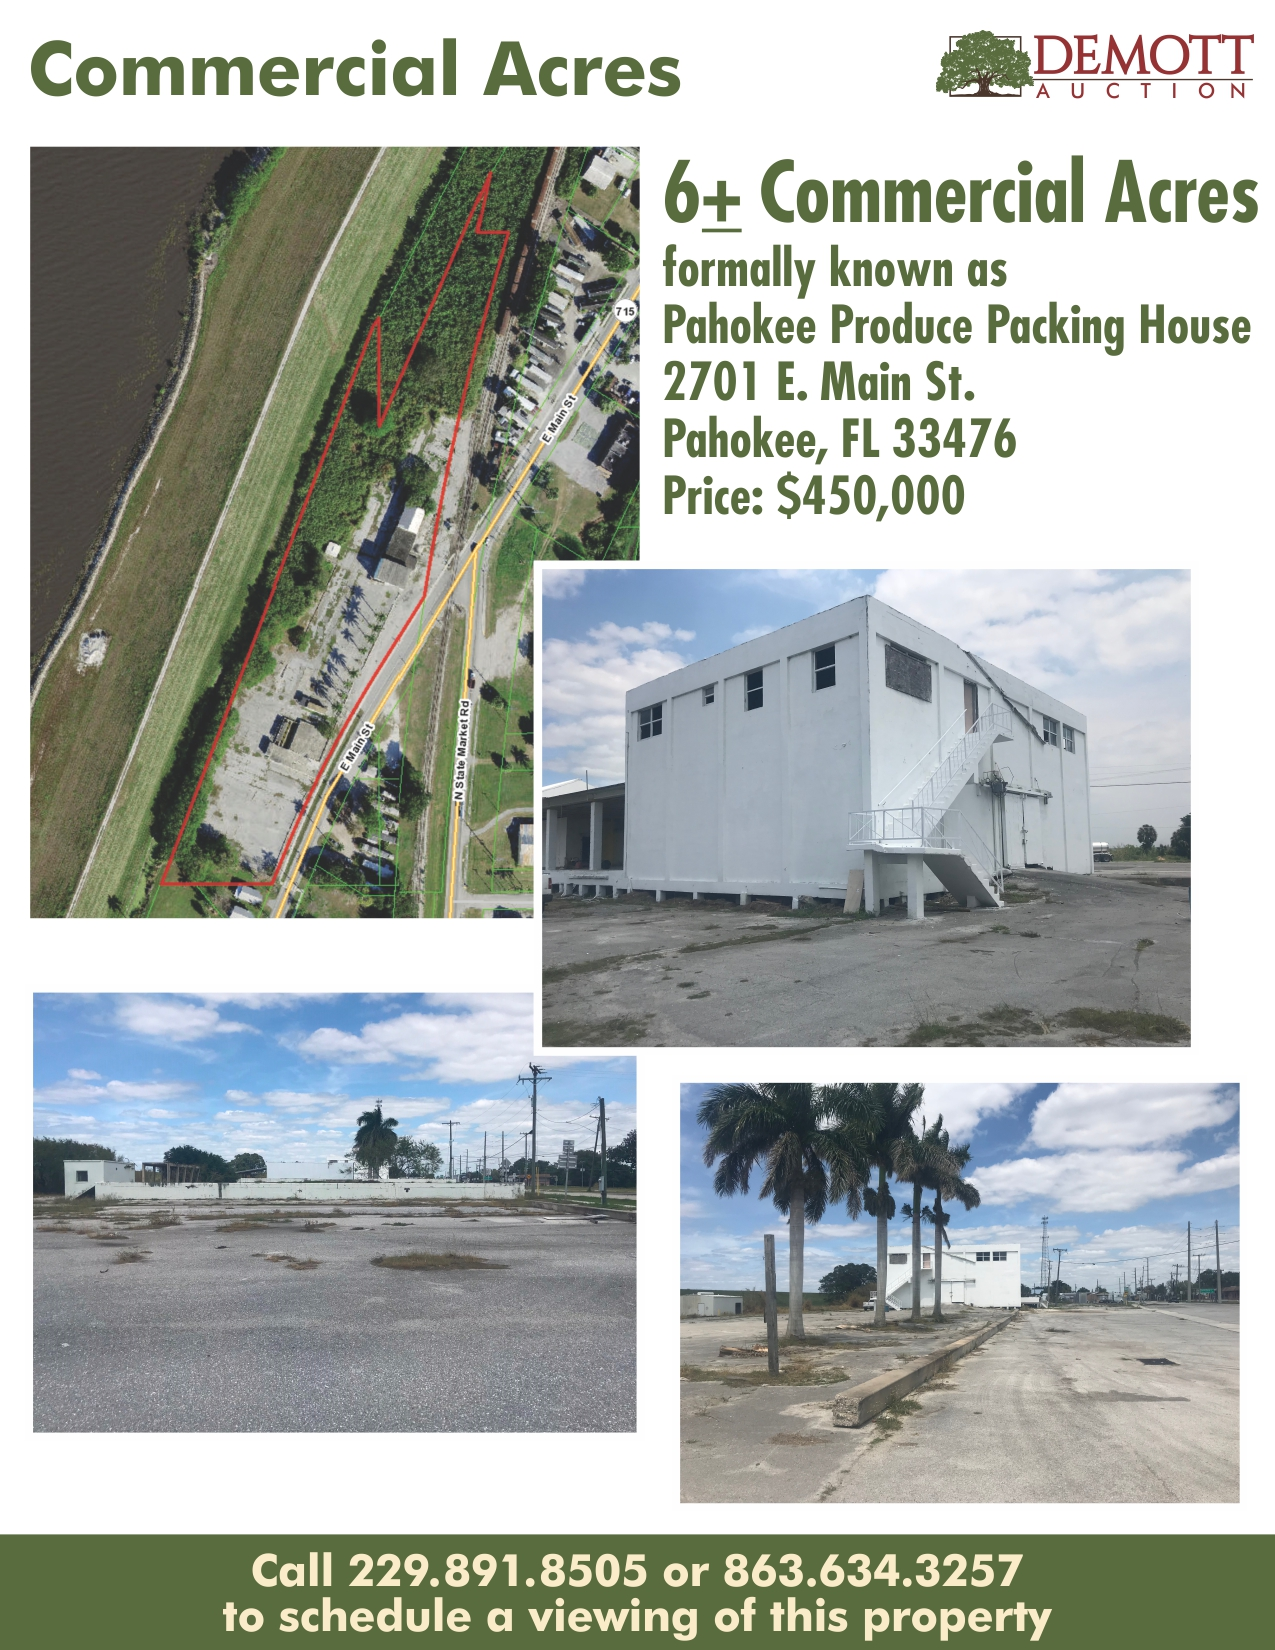 Commercial Acres Info